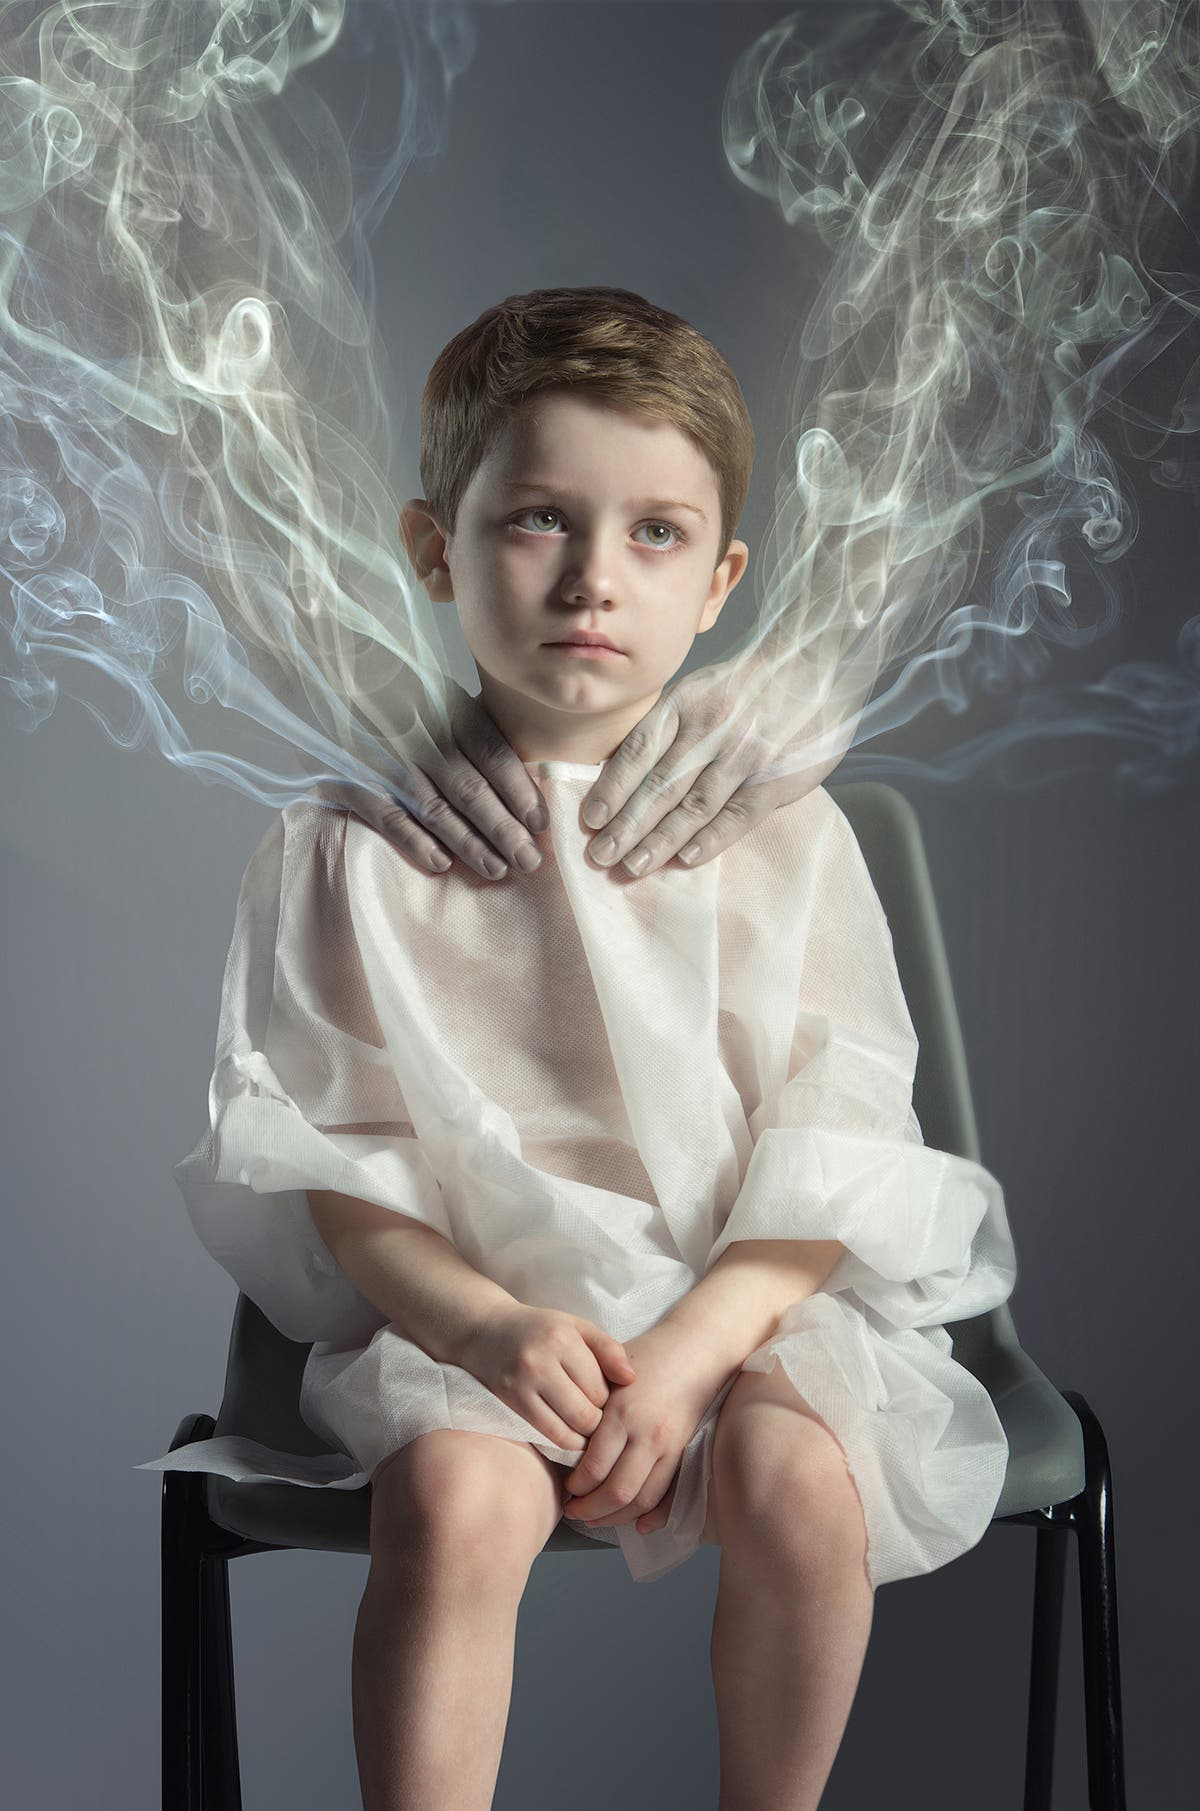 Lee Høwell Promotes Anti Passive Smoking Awareness Through Photography